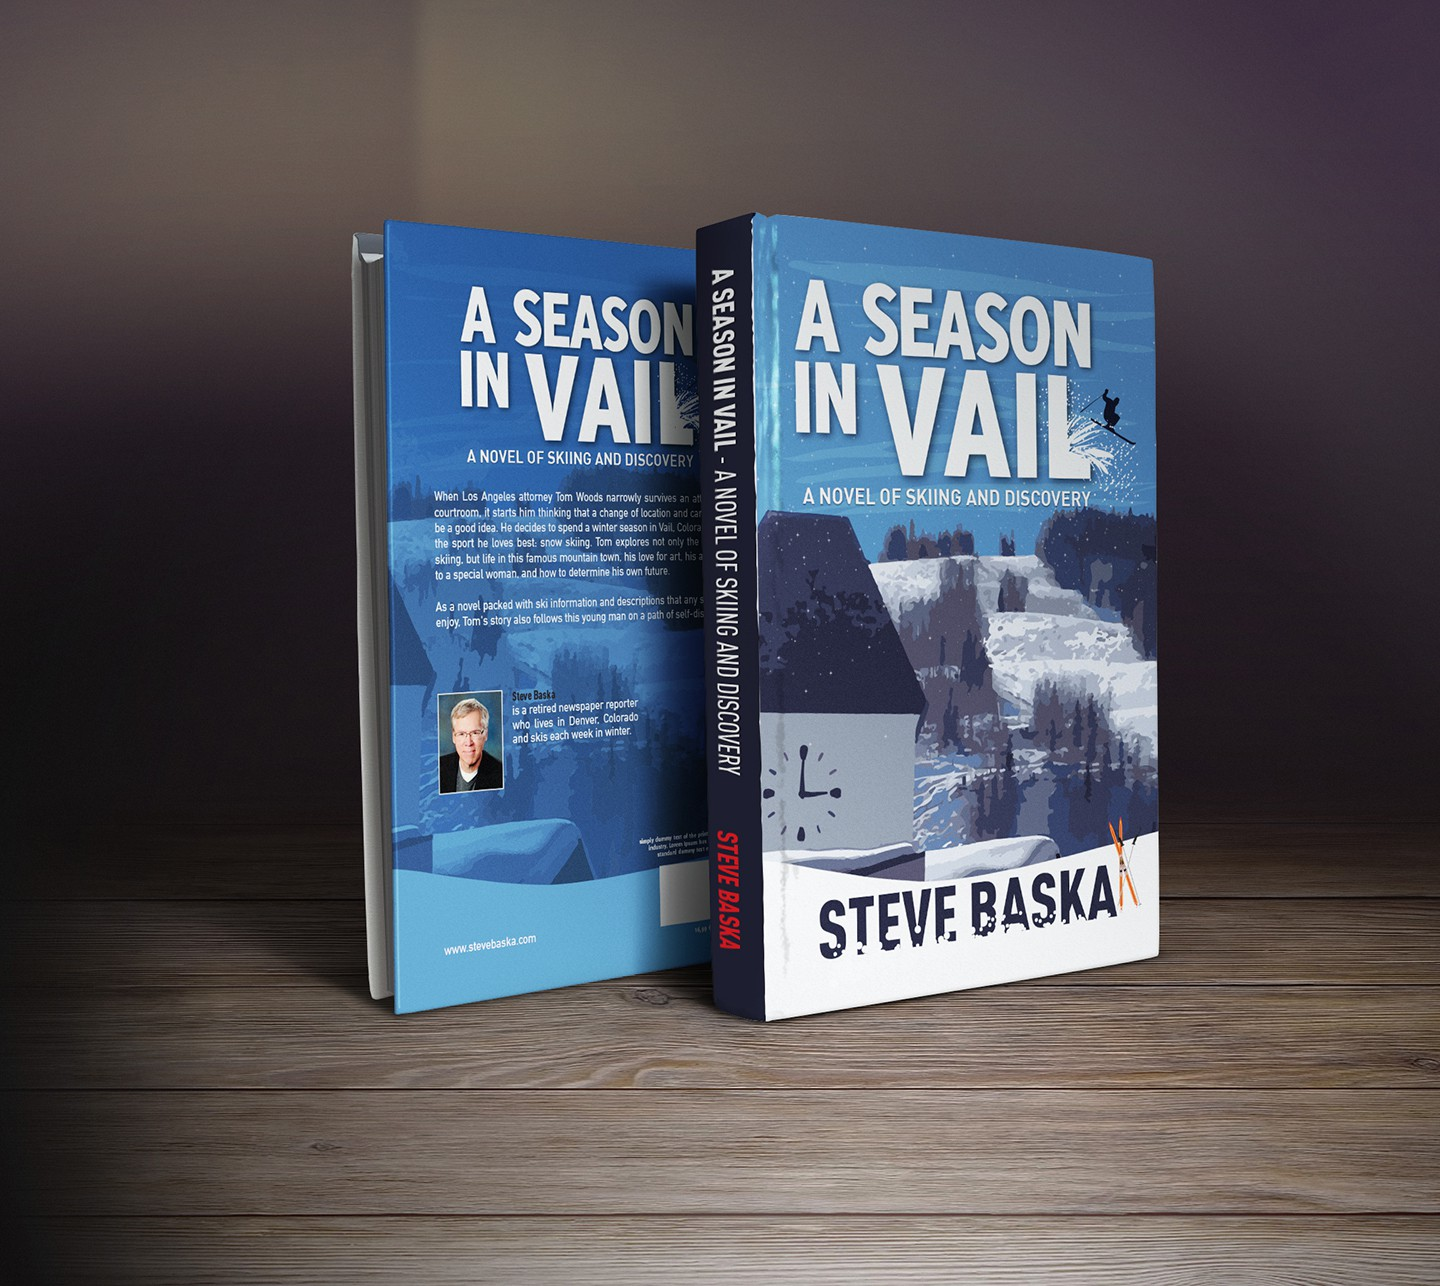 A Season in Vail book cover